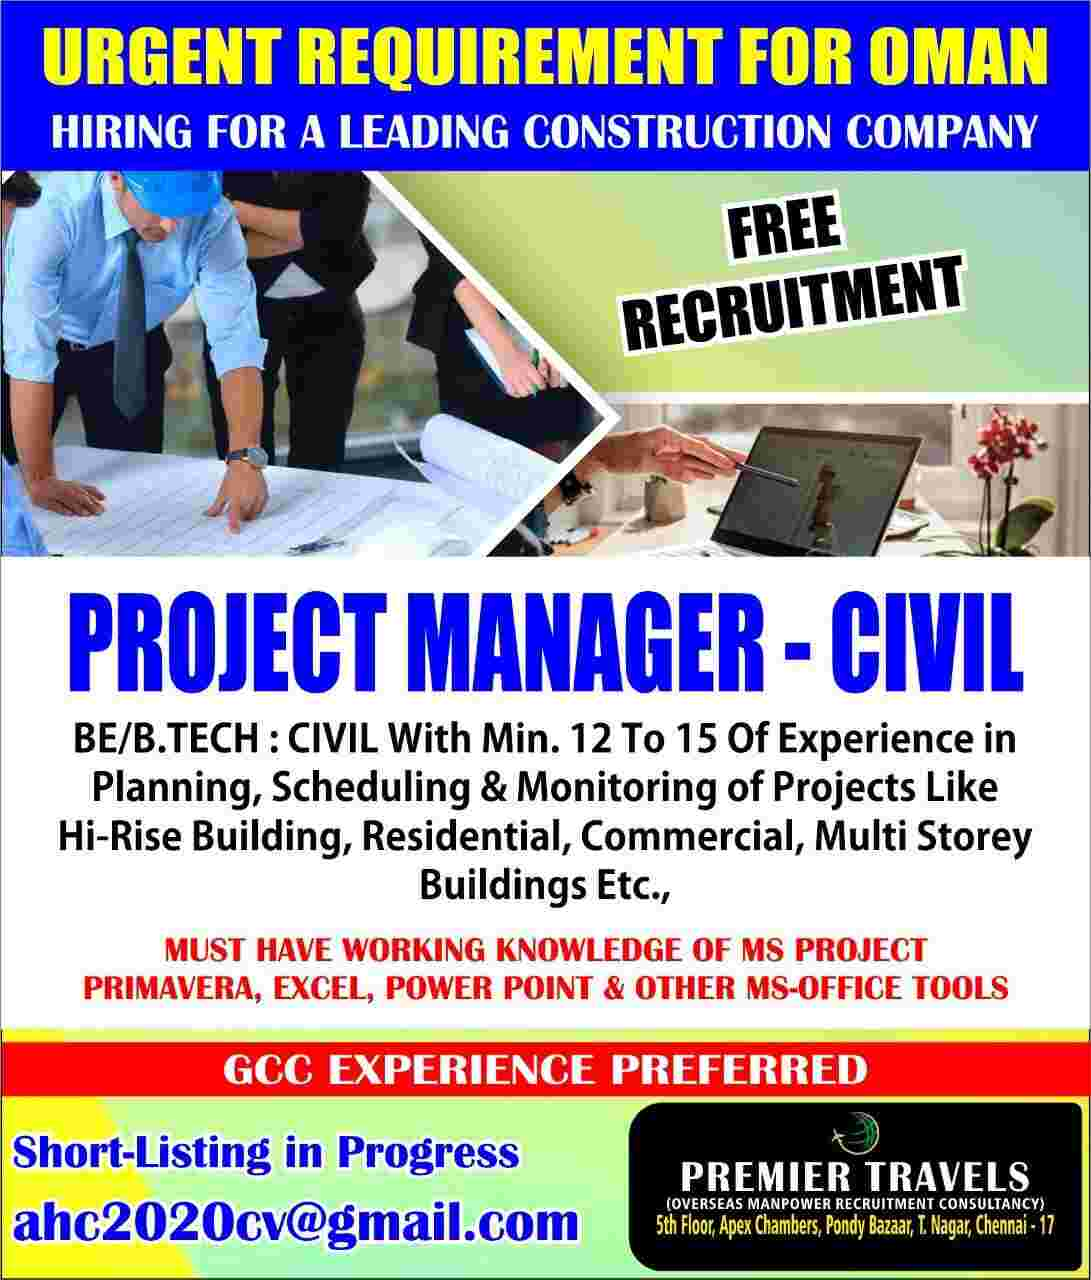 Project Manager Civil | Hiring for a leading Construction Co. Oman